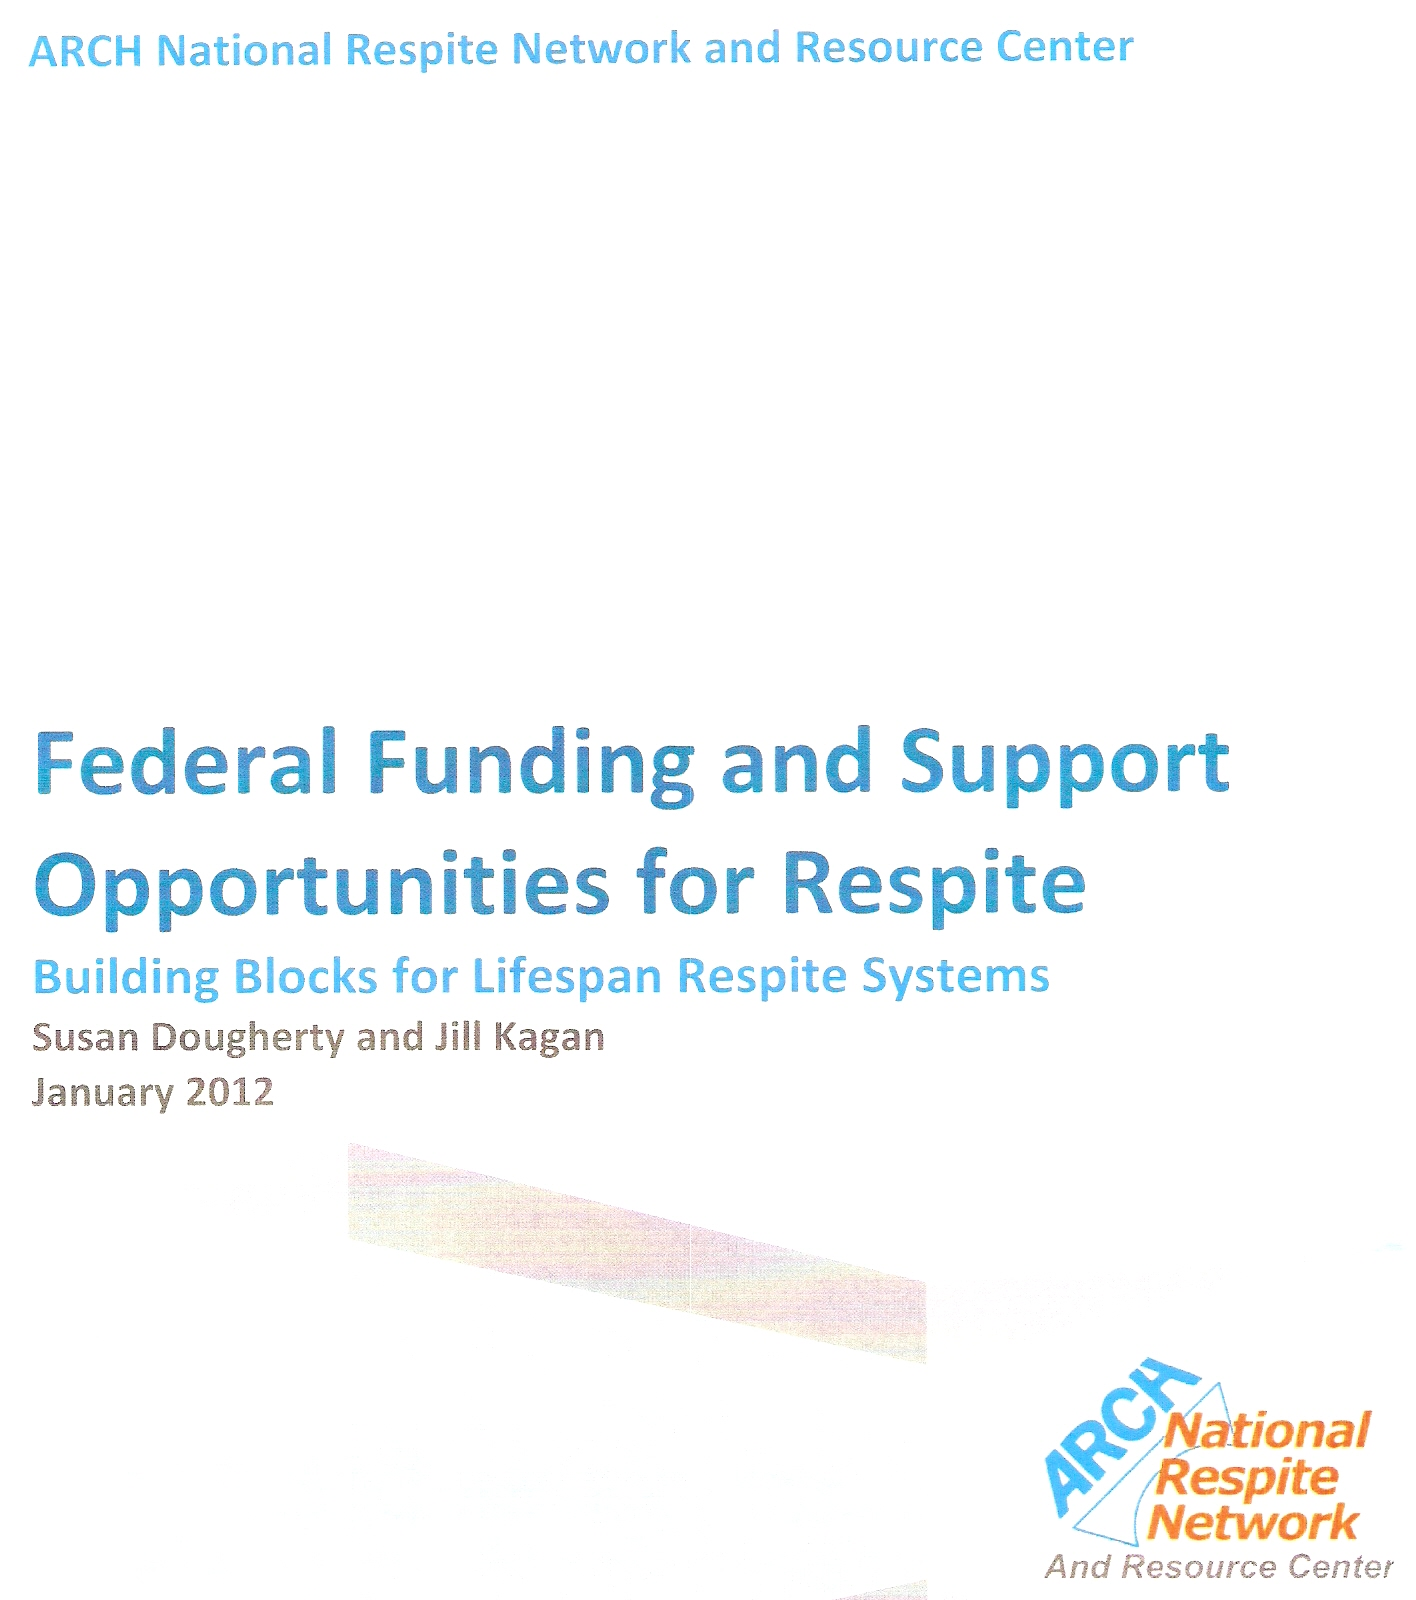 funding for lifespan respite systems